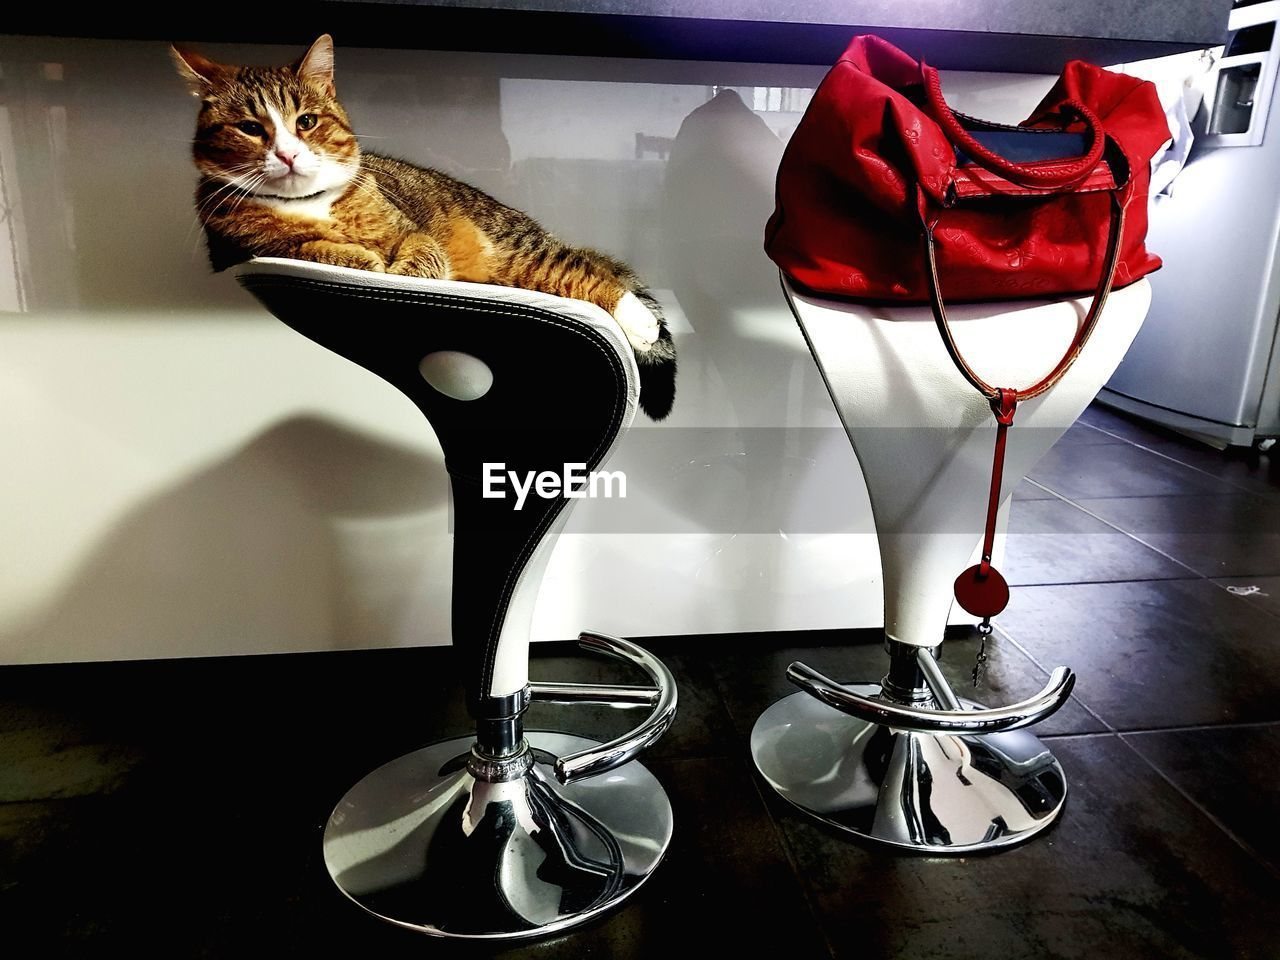 cat, feline, domestic cat, domestic animals, mammal, domestic, pets, animal themes, animal, table, indoors, no people, vertebrate, one animal, household equipment, nature, glass - material, flooring, close-up, home interior, whisker